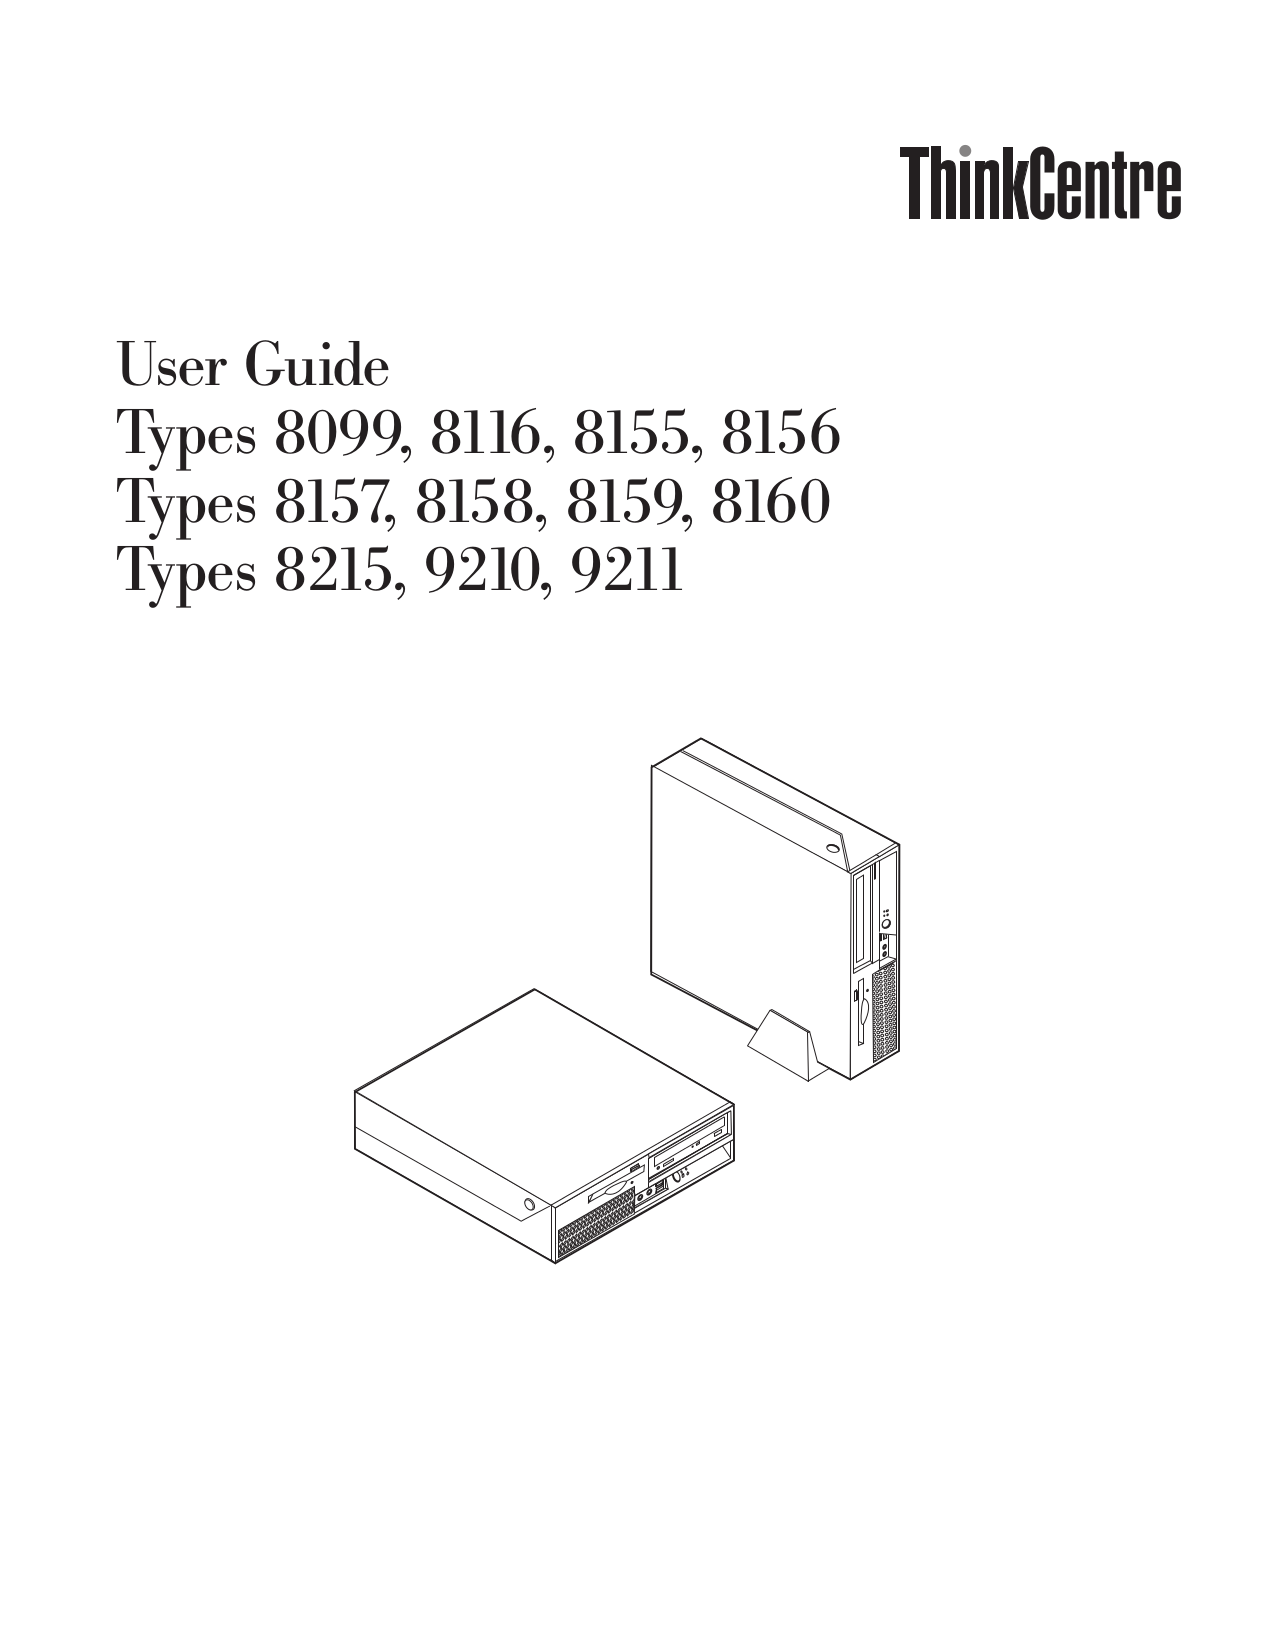 pdf for Lenovo Desktop ThinkCentre M52 9210 manual